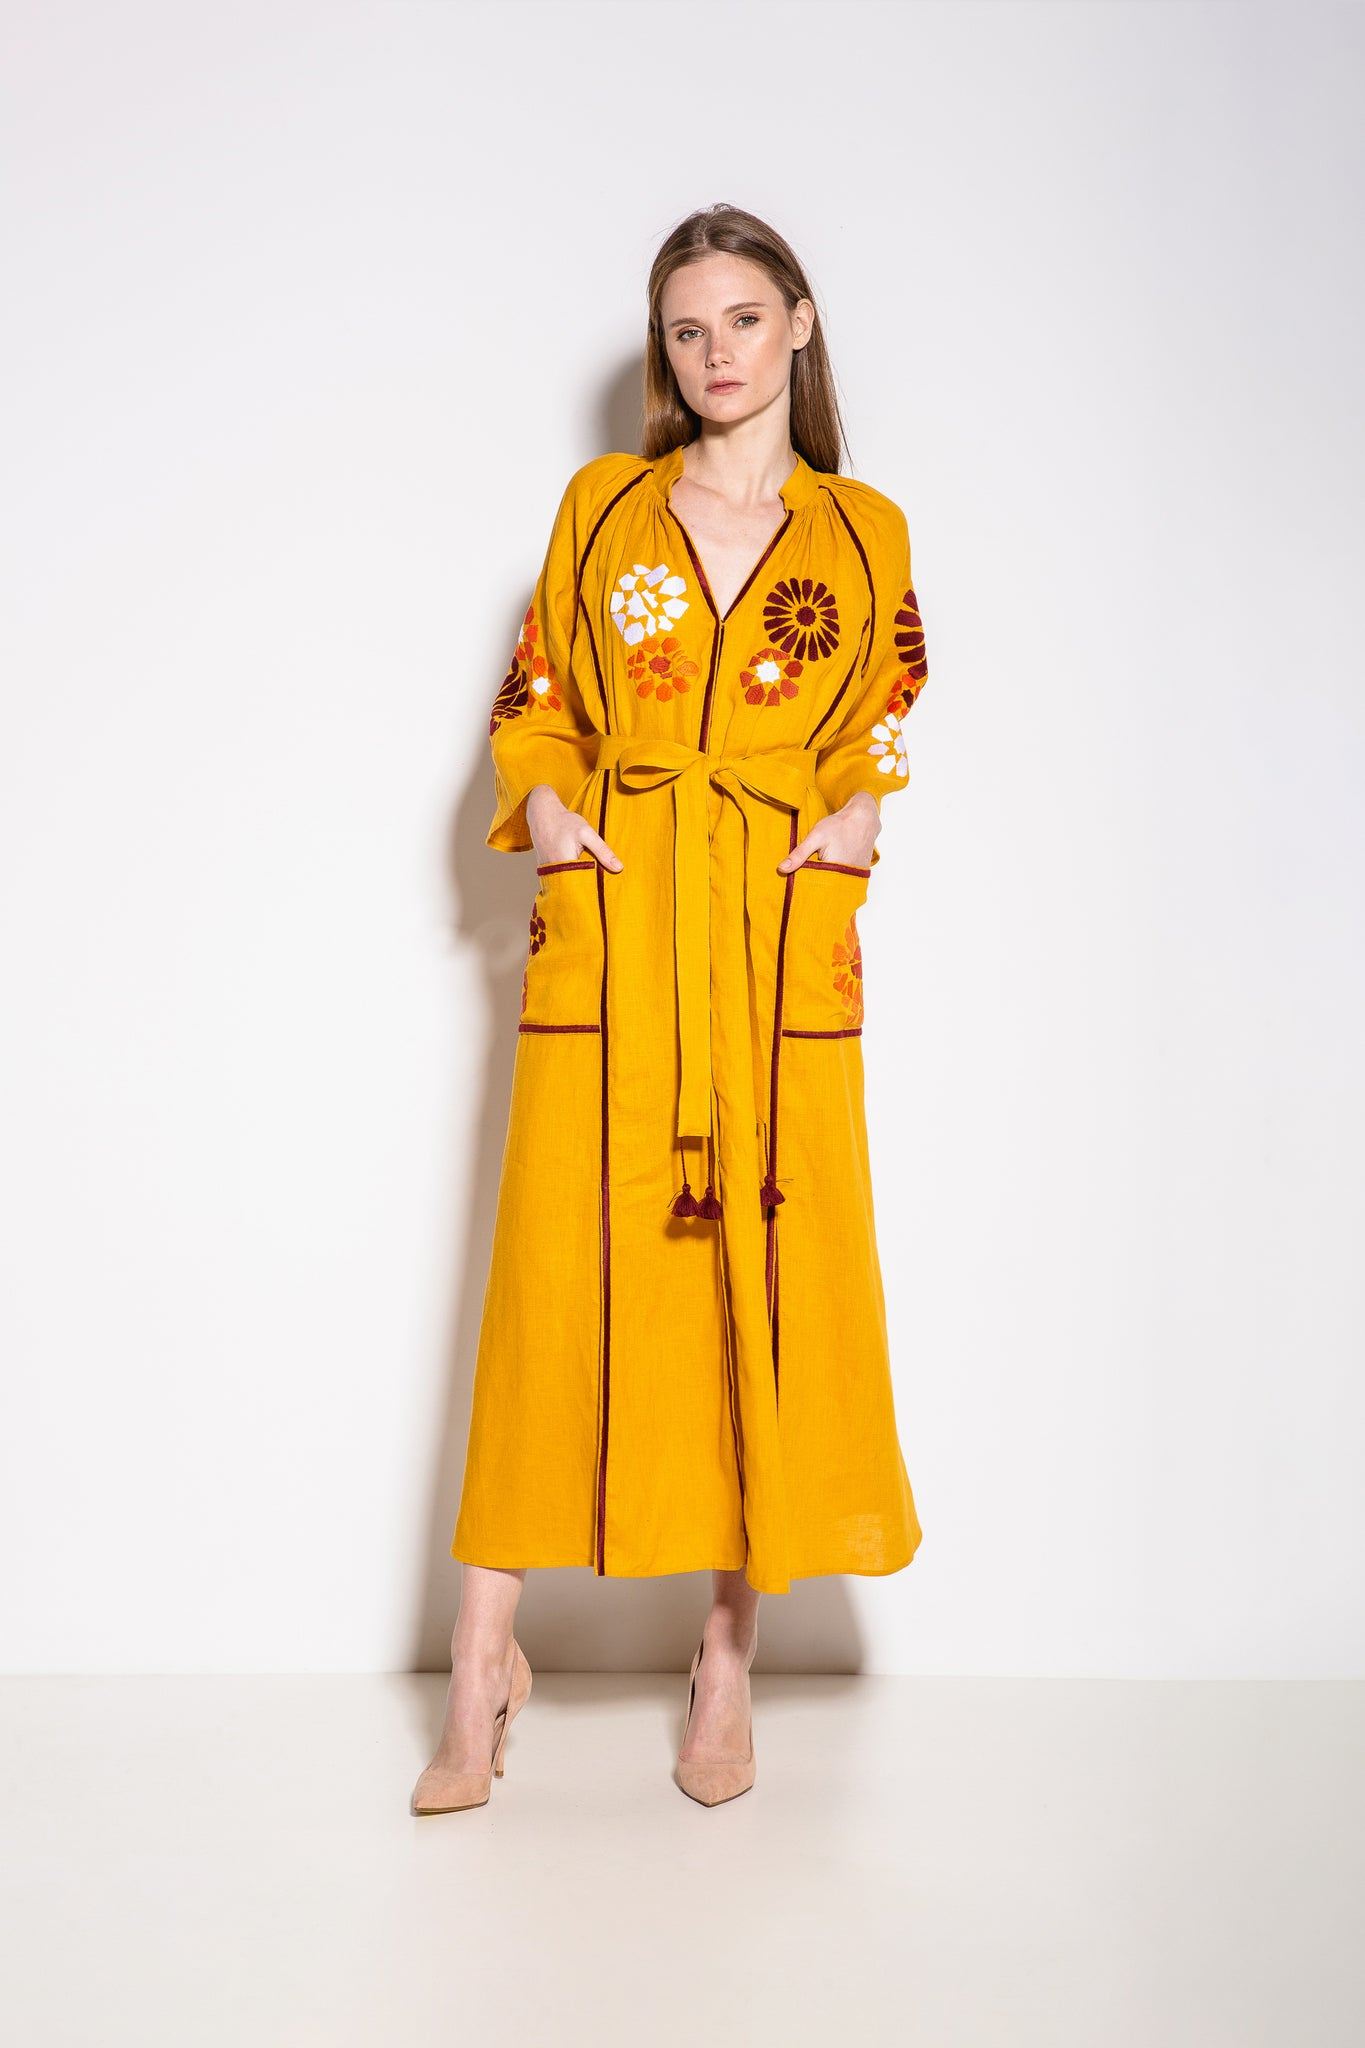 Barcelona Midi Dress in Yellow with Burgundy and White